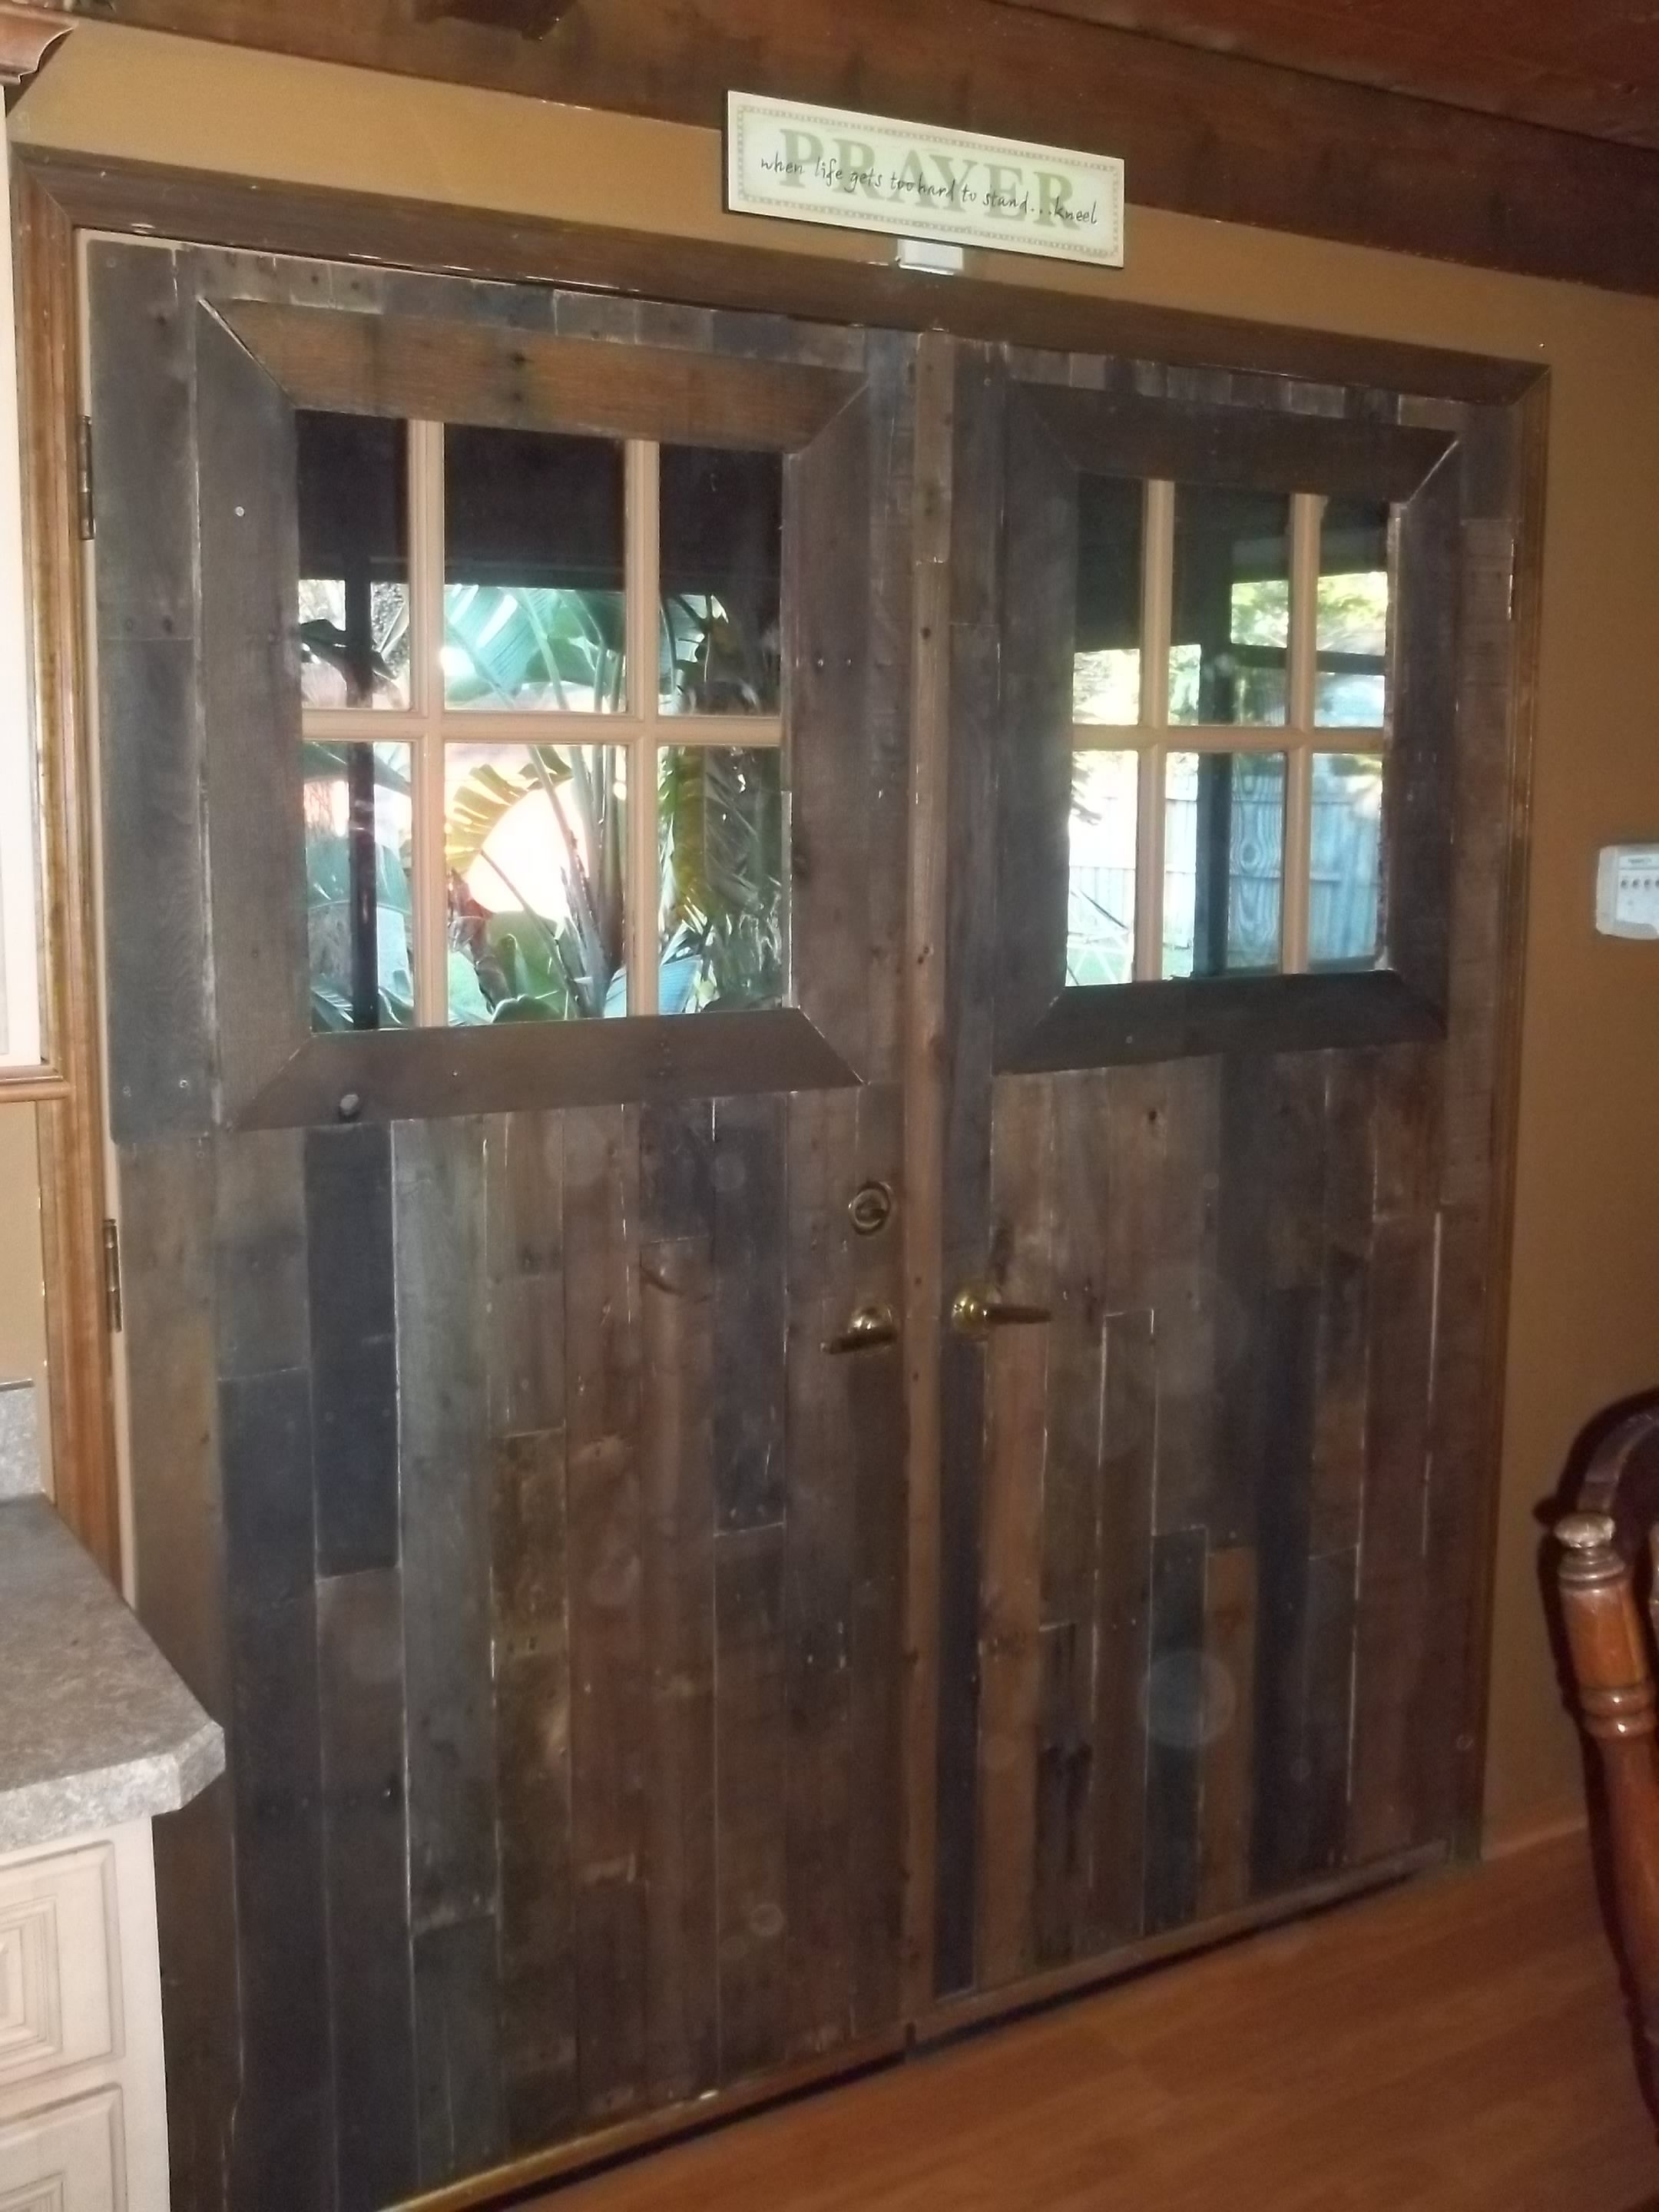 2880 #8C693F Reclaimed Pallet Wood French Doors.. Scraps.. Pinterest wallpaper Wooden French Doors 48152160